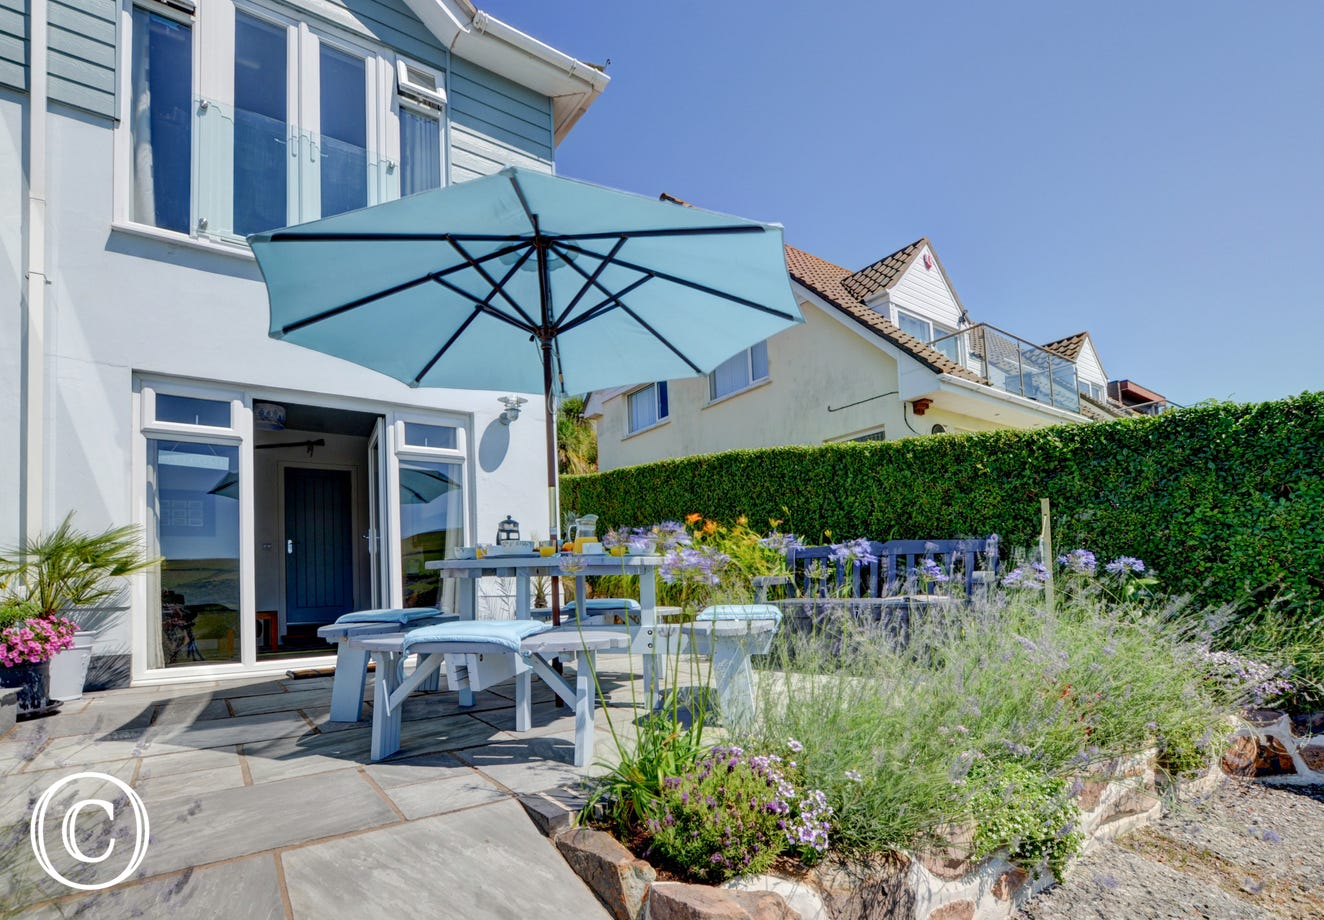 Situated in a most sort after location just a short walk to the award winning surfing beach of Woolacombe